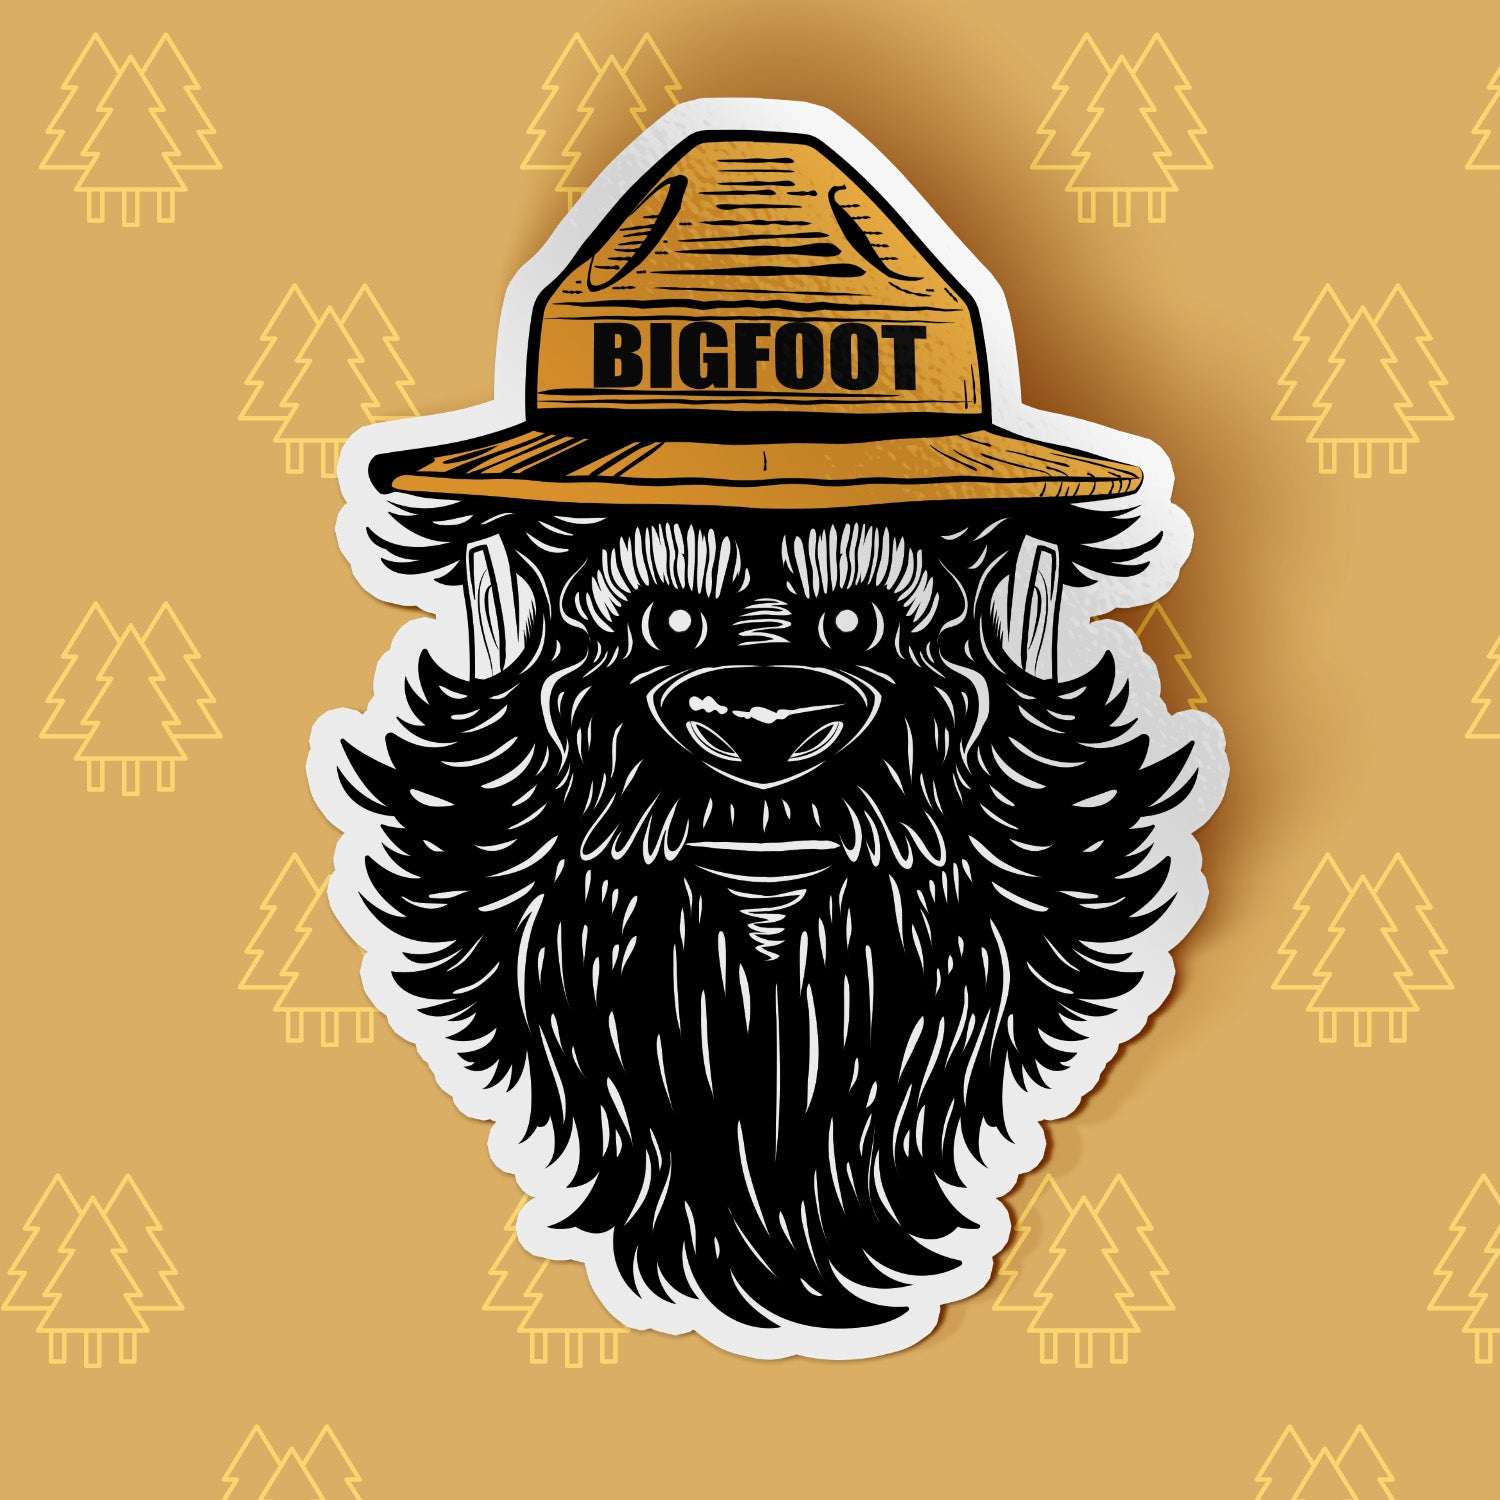 Park Ranger Bigfoot Sticker